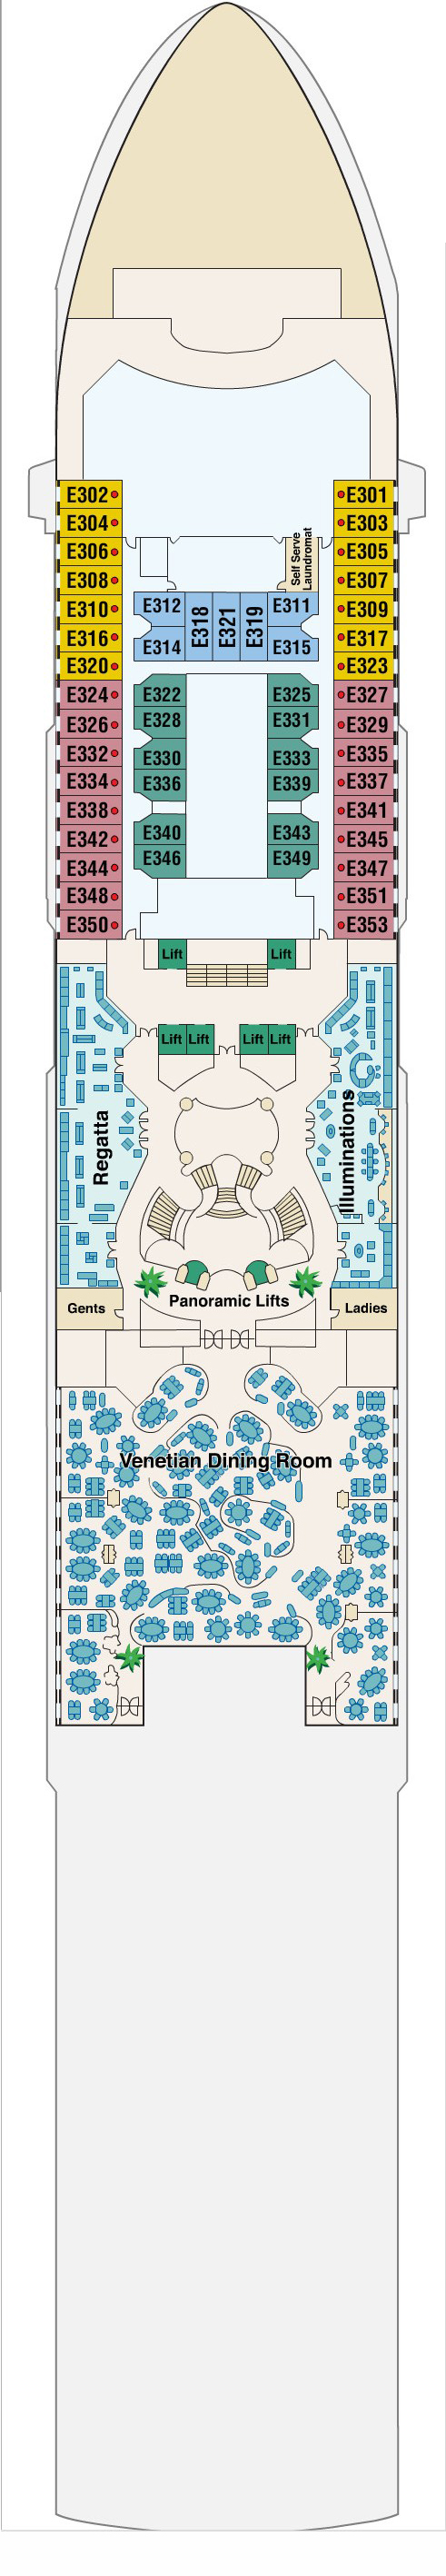 Dawn Princess Emerald Deck 6 layout